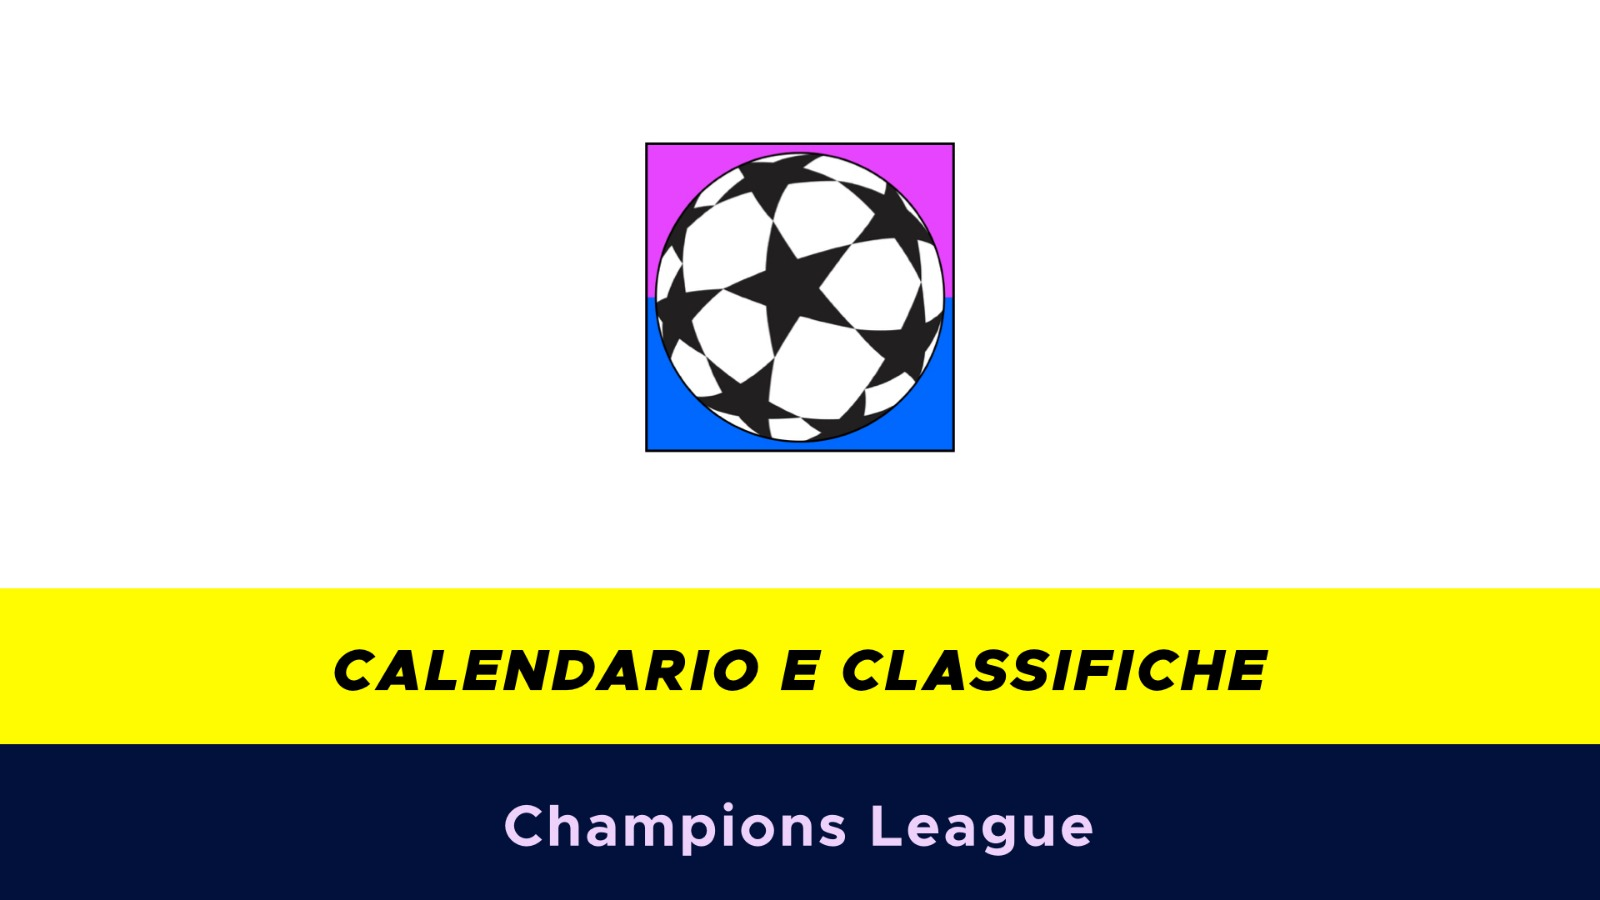 Calendario Della Champions League.Calendario E Classifiche Champions League 2018 2019